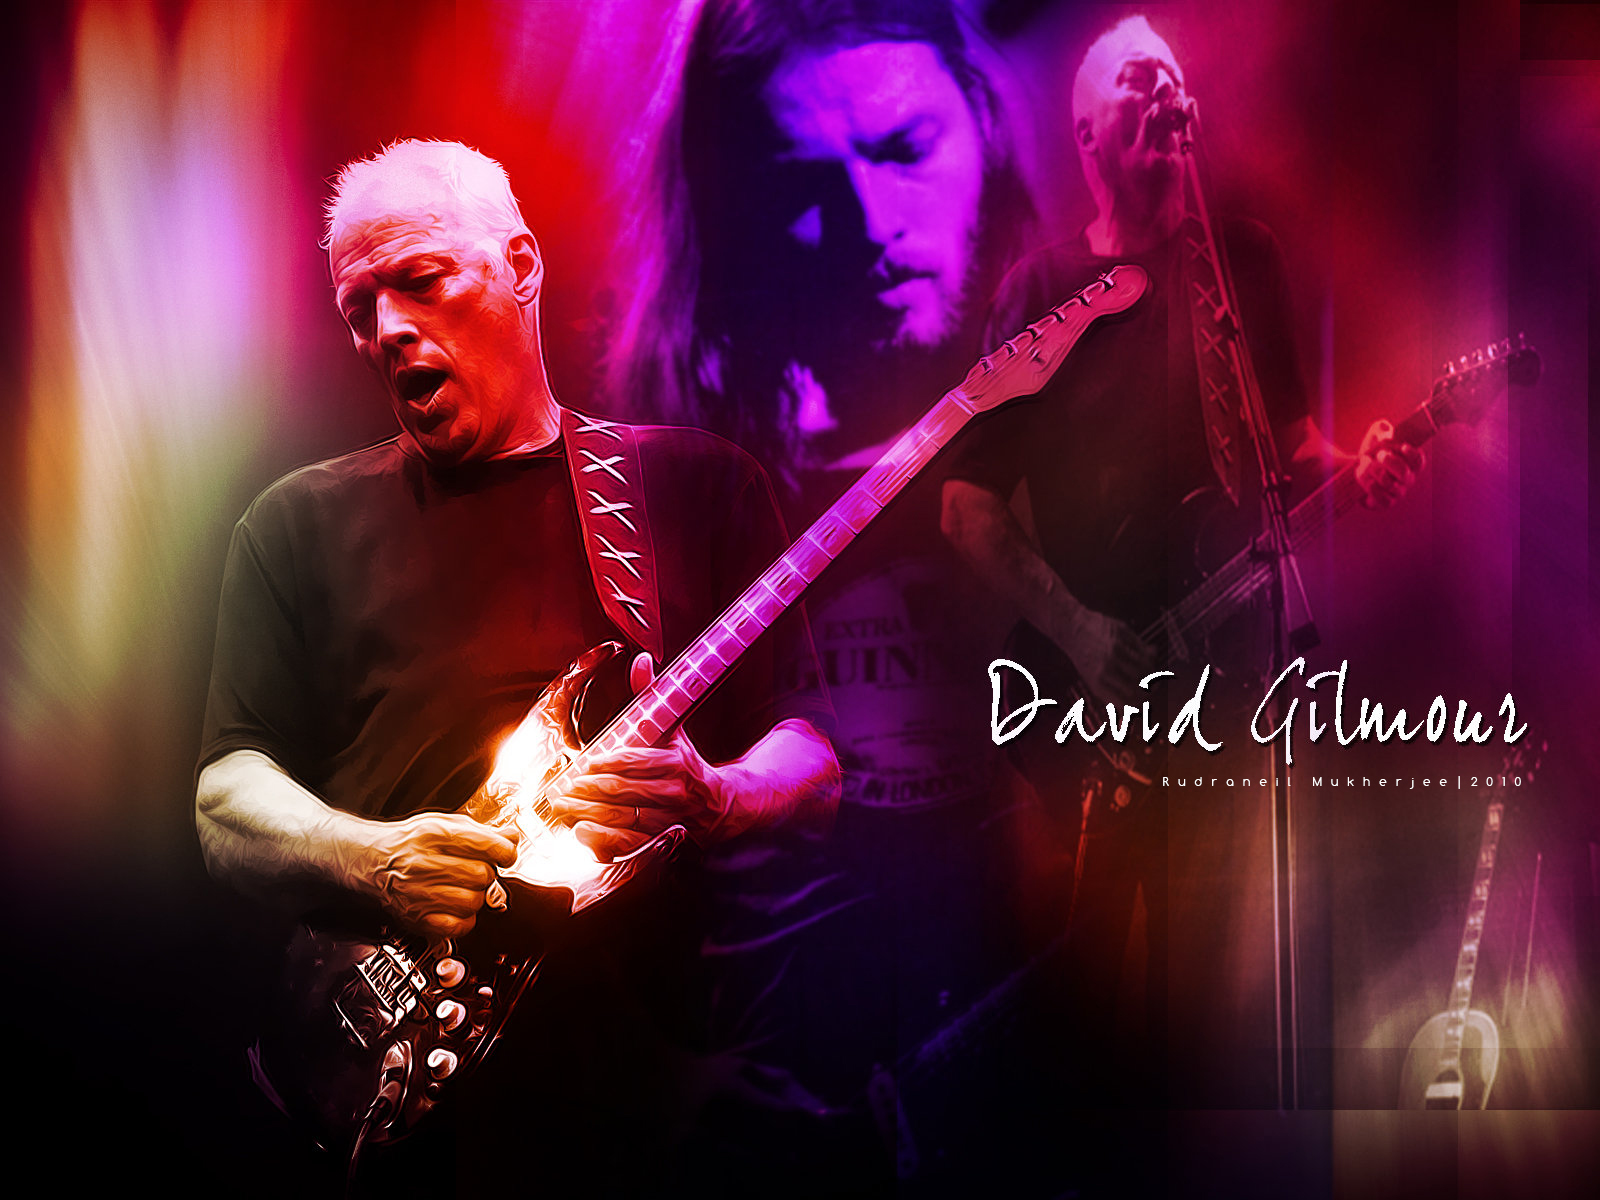 3d Bike Live Wallpaper Download David Gilmour Wallpaper Gallery